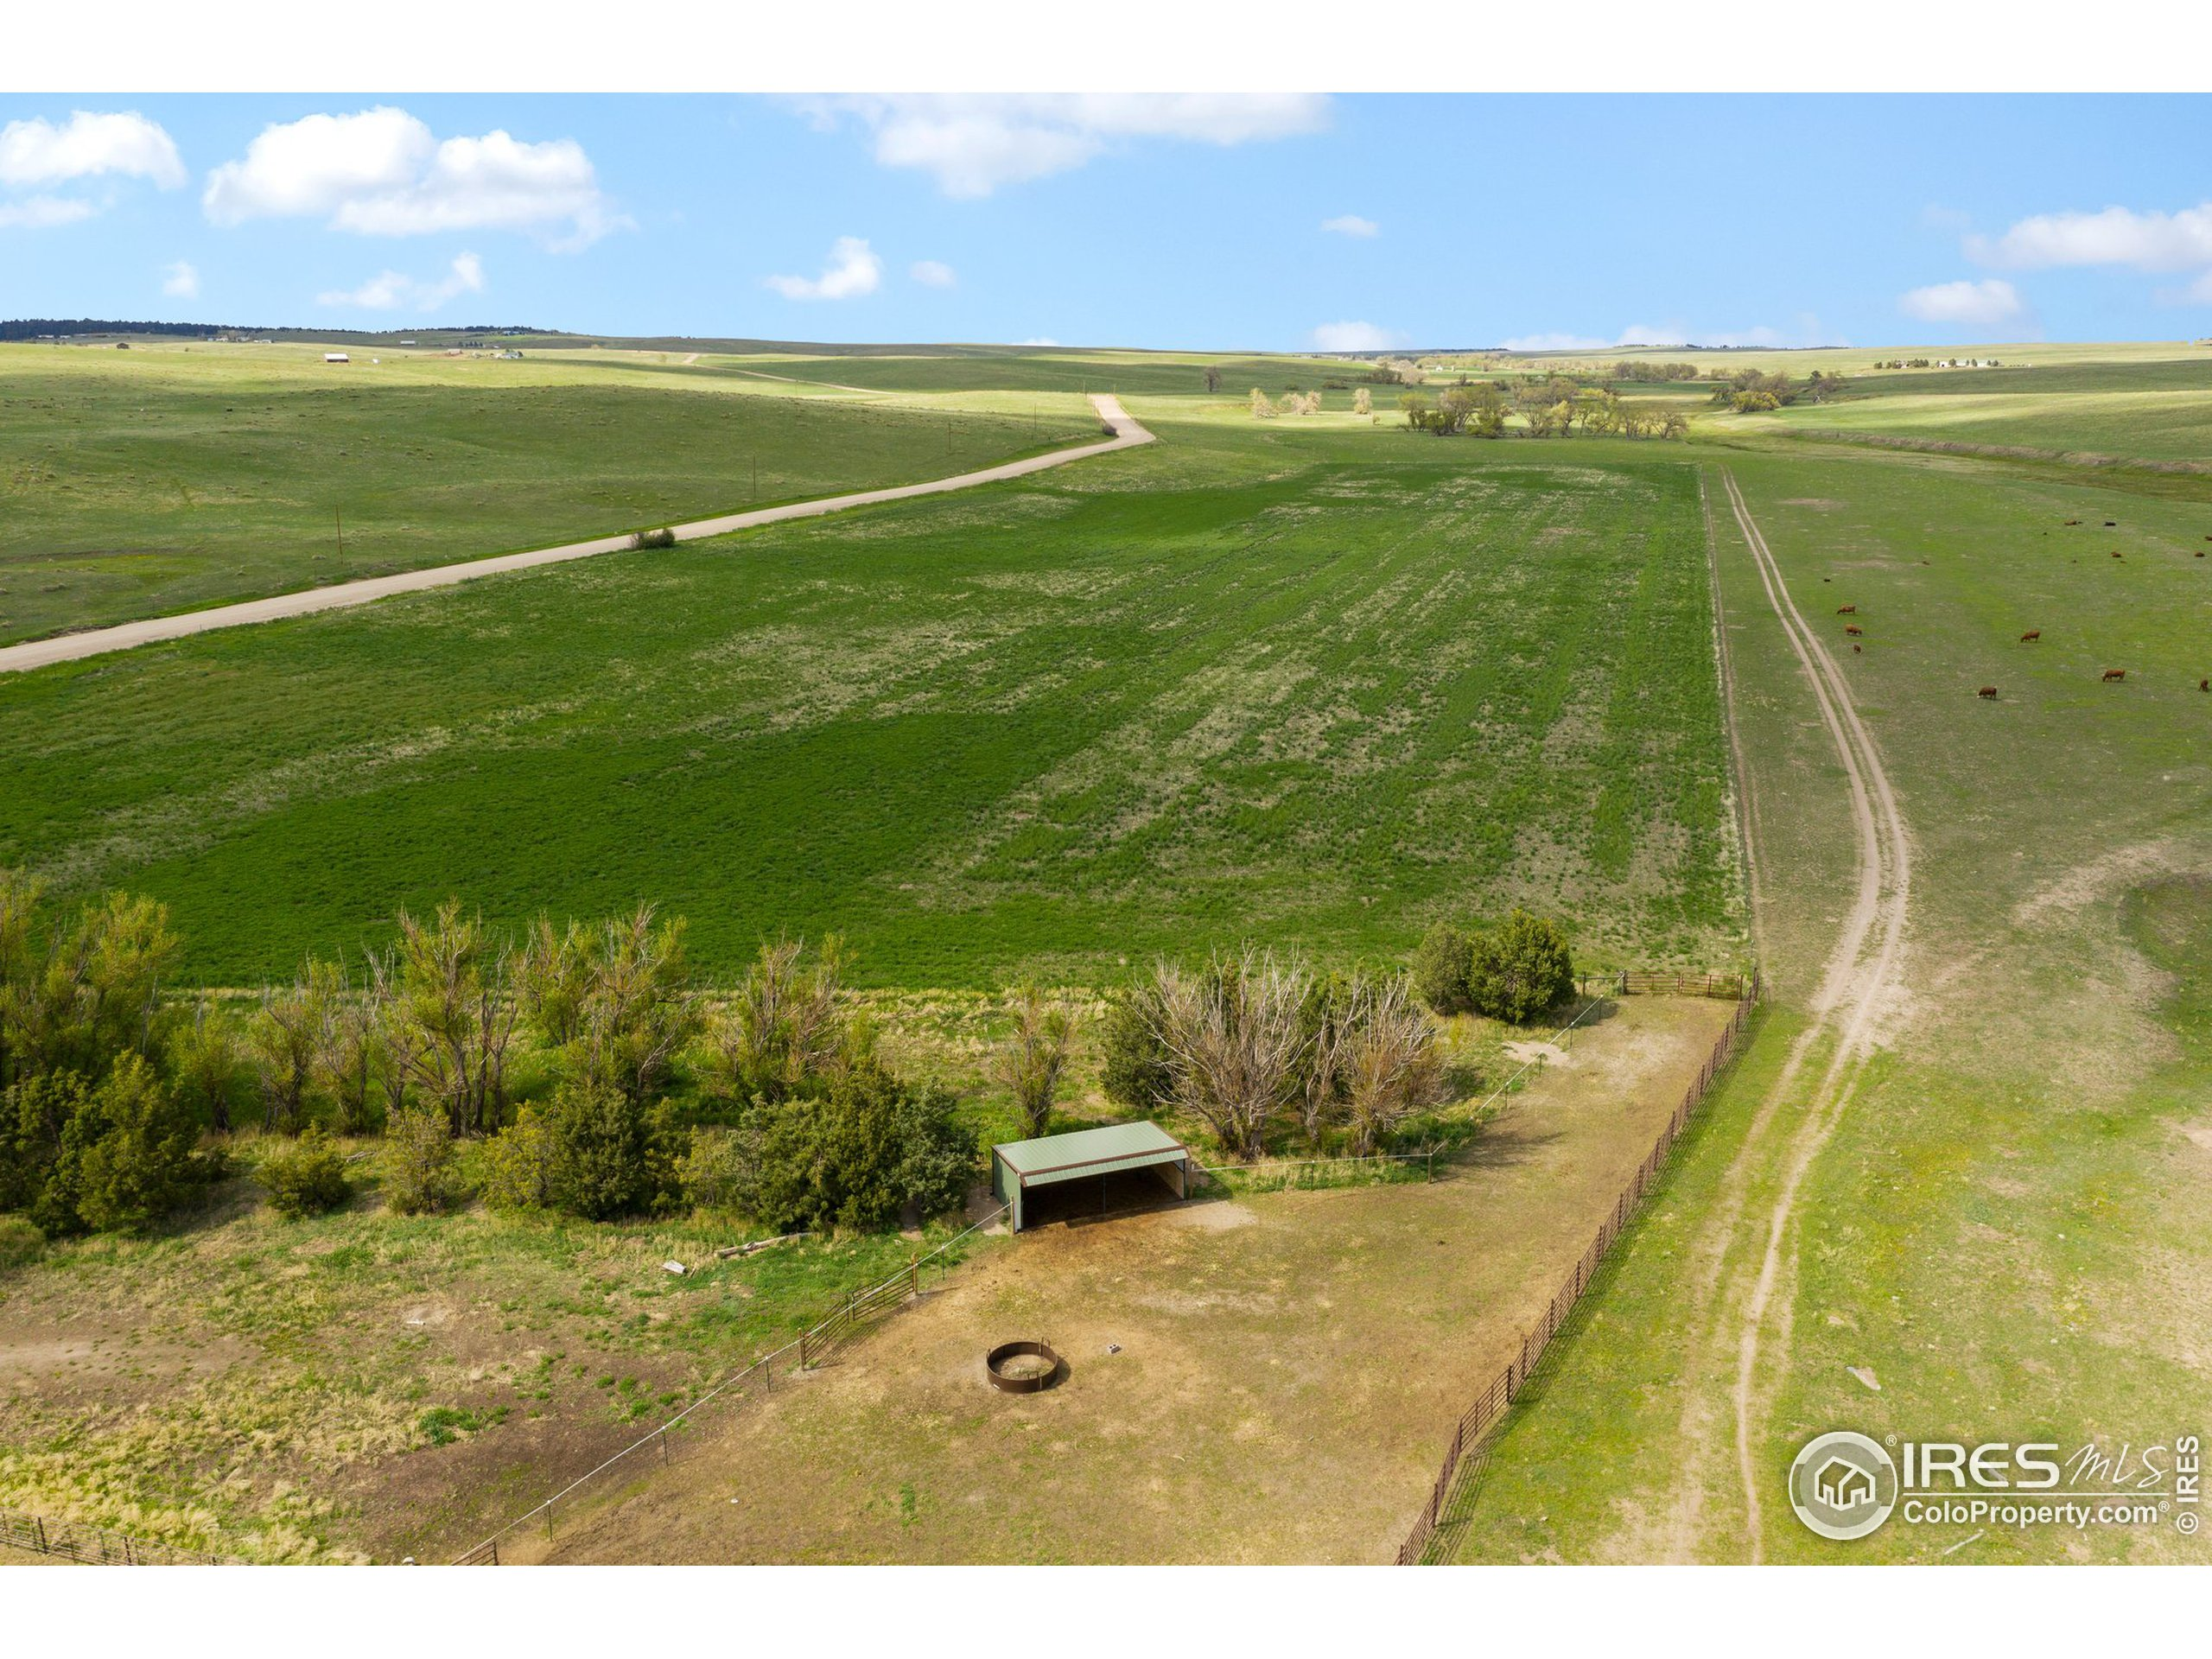 20 Acres of Alfalfa/Grass mix producing approximately 500 hay bales per year